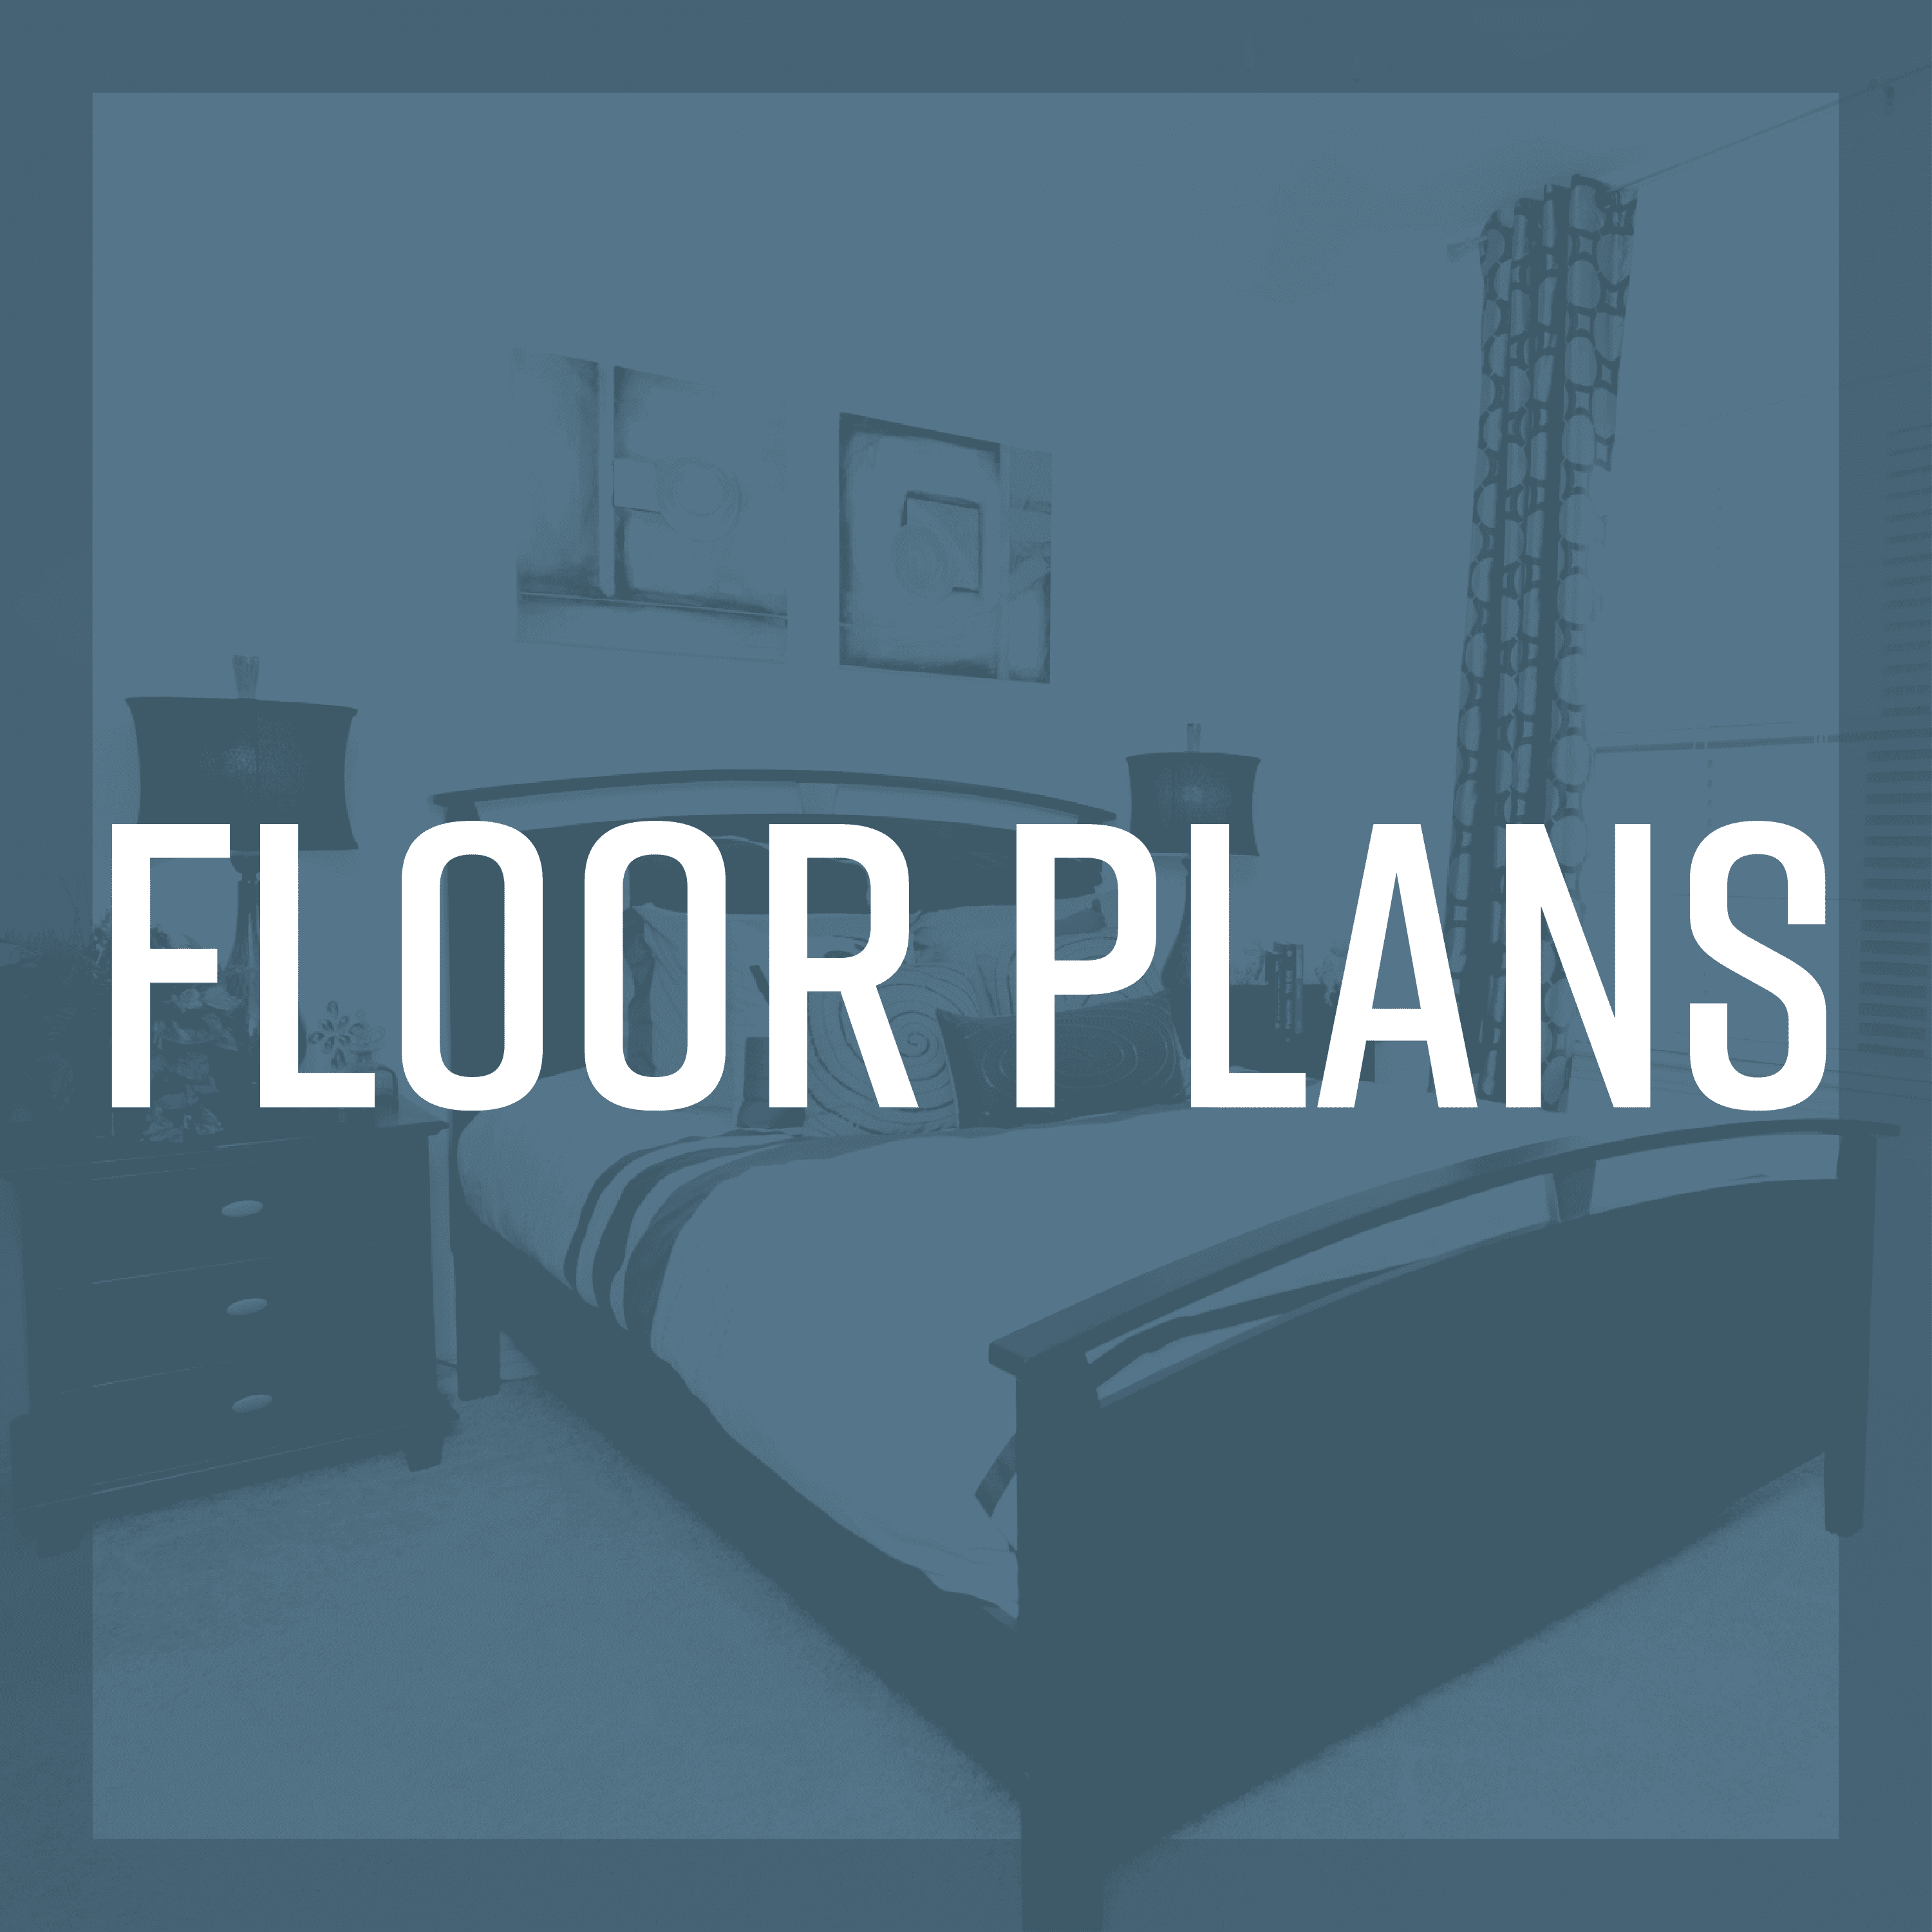 Floor plans at 23Hundred at Ridgeview in Plano, Texas